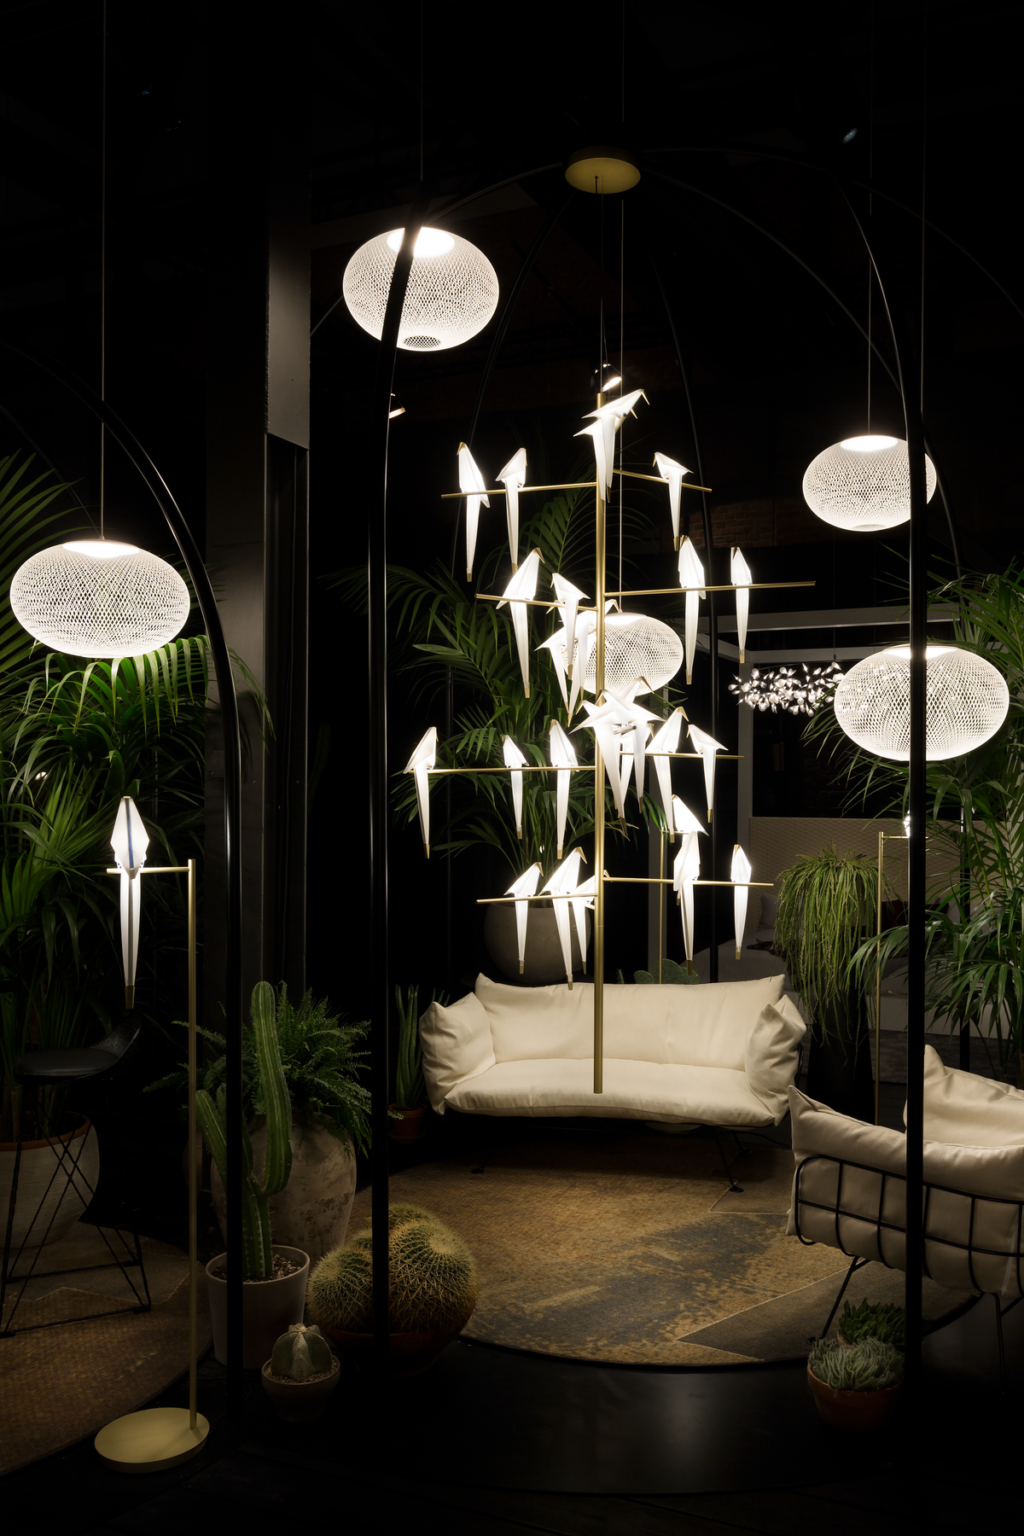 https://desidea.hu/wp-content/uploads/fly-images/160163/moooi-perch-allolampa5-1024x0.png